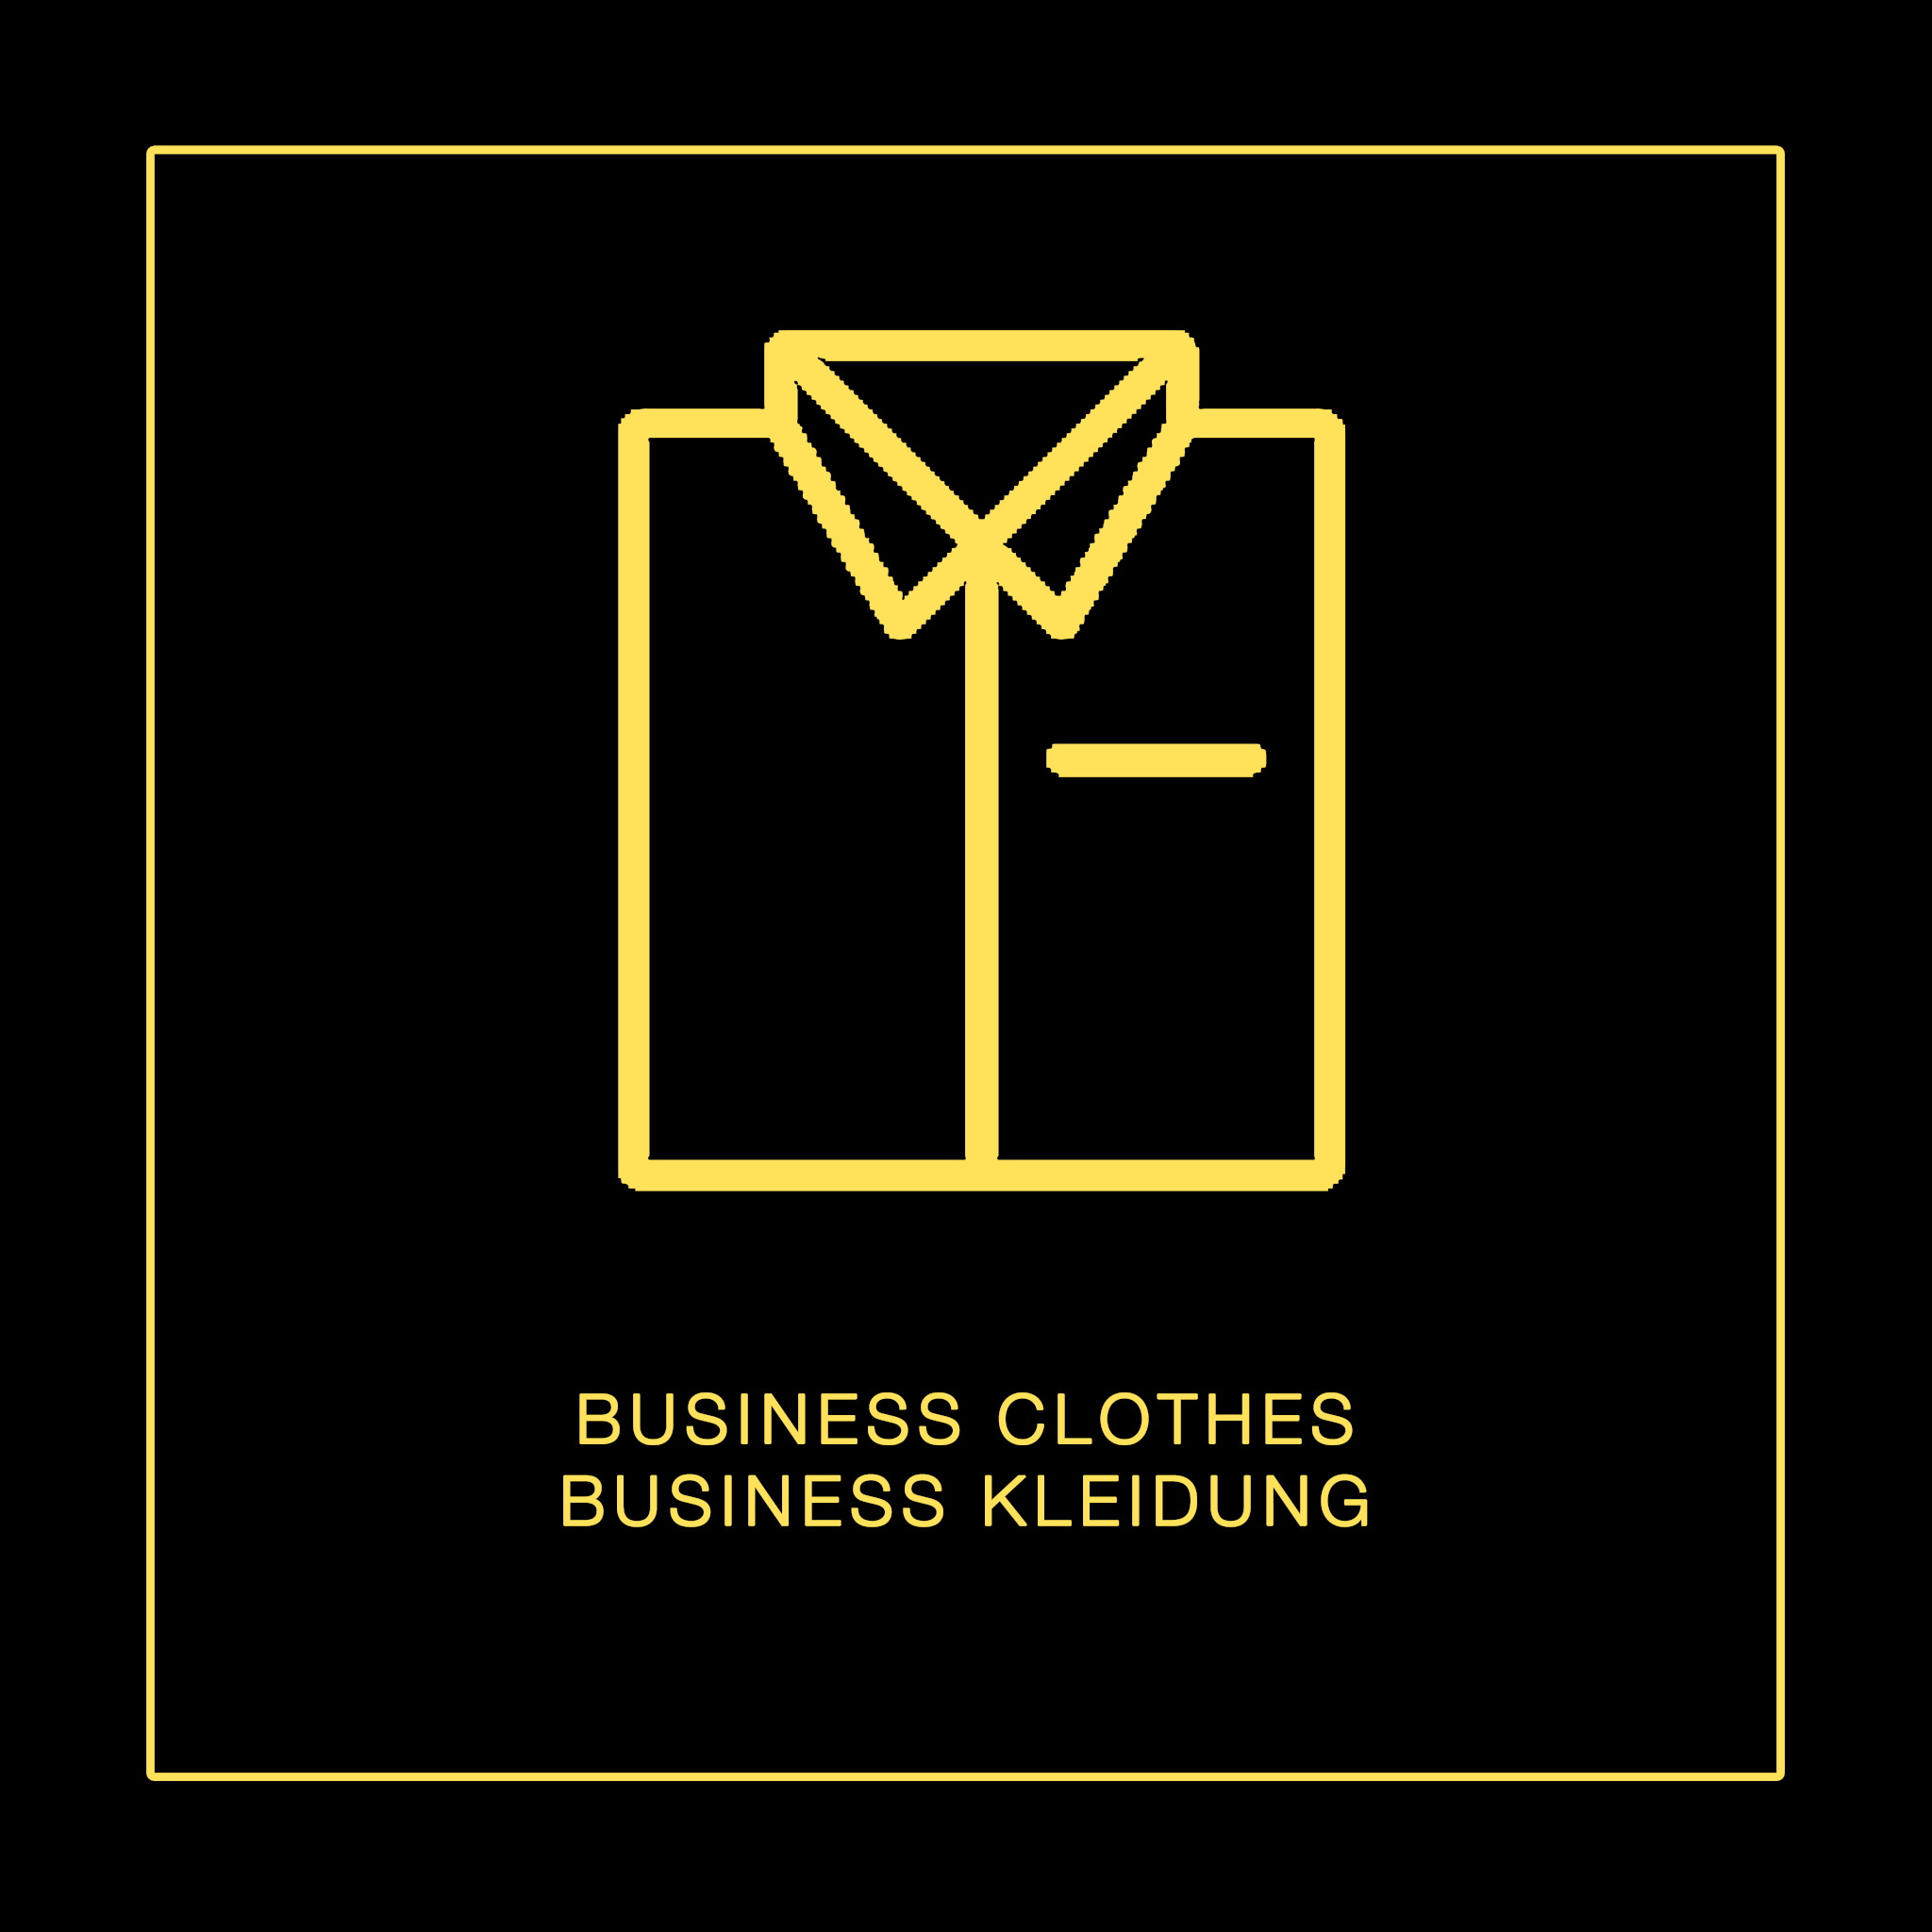 Business Clothes